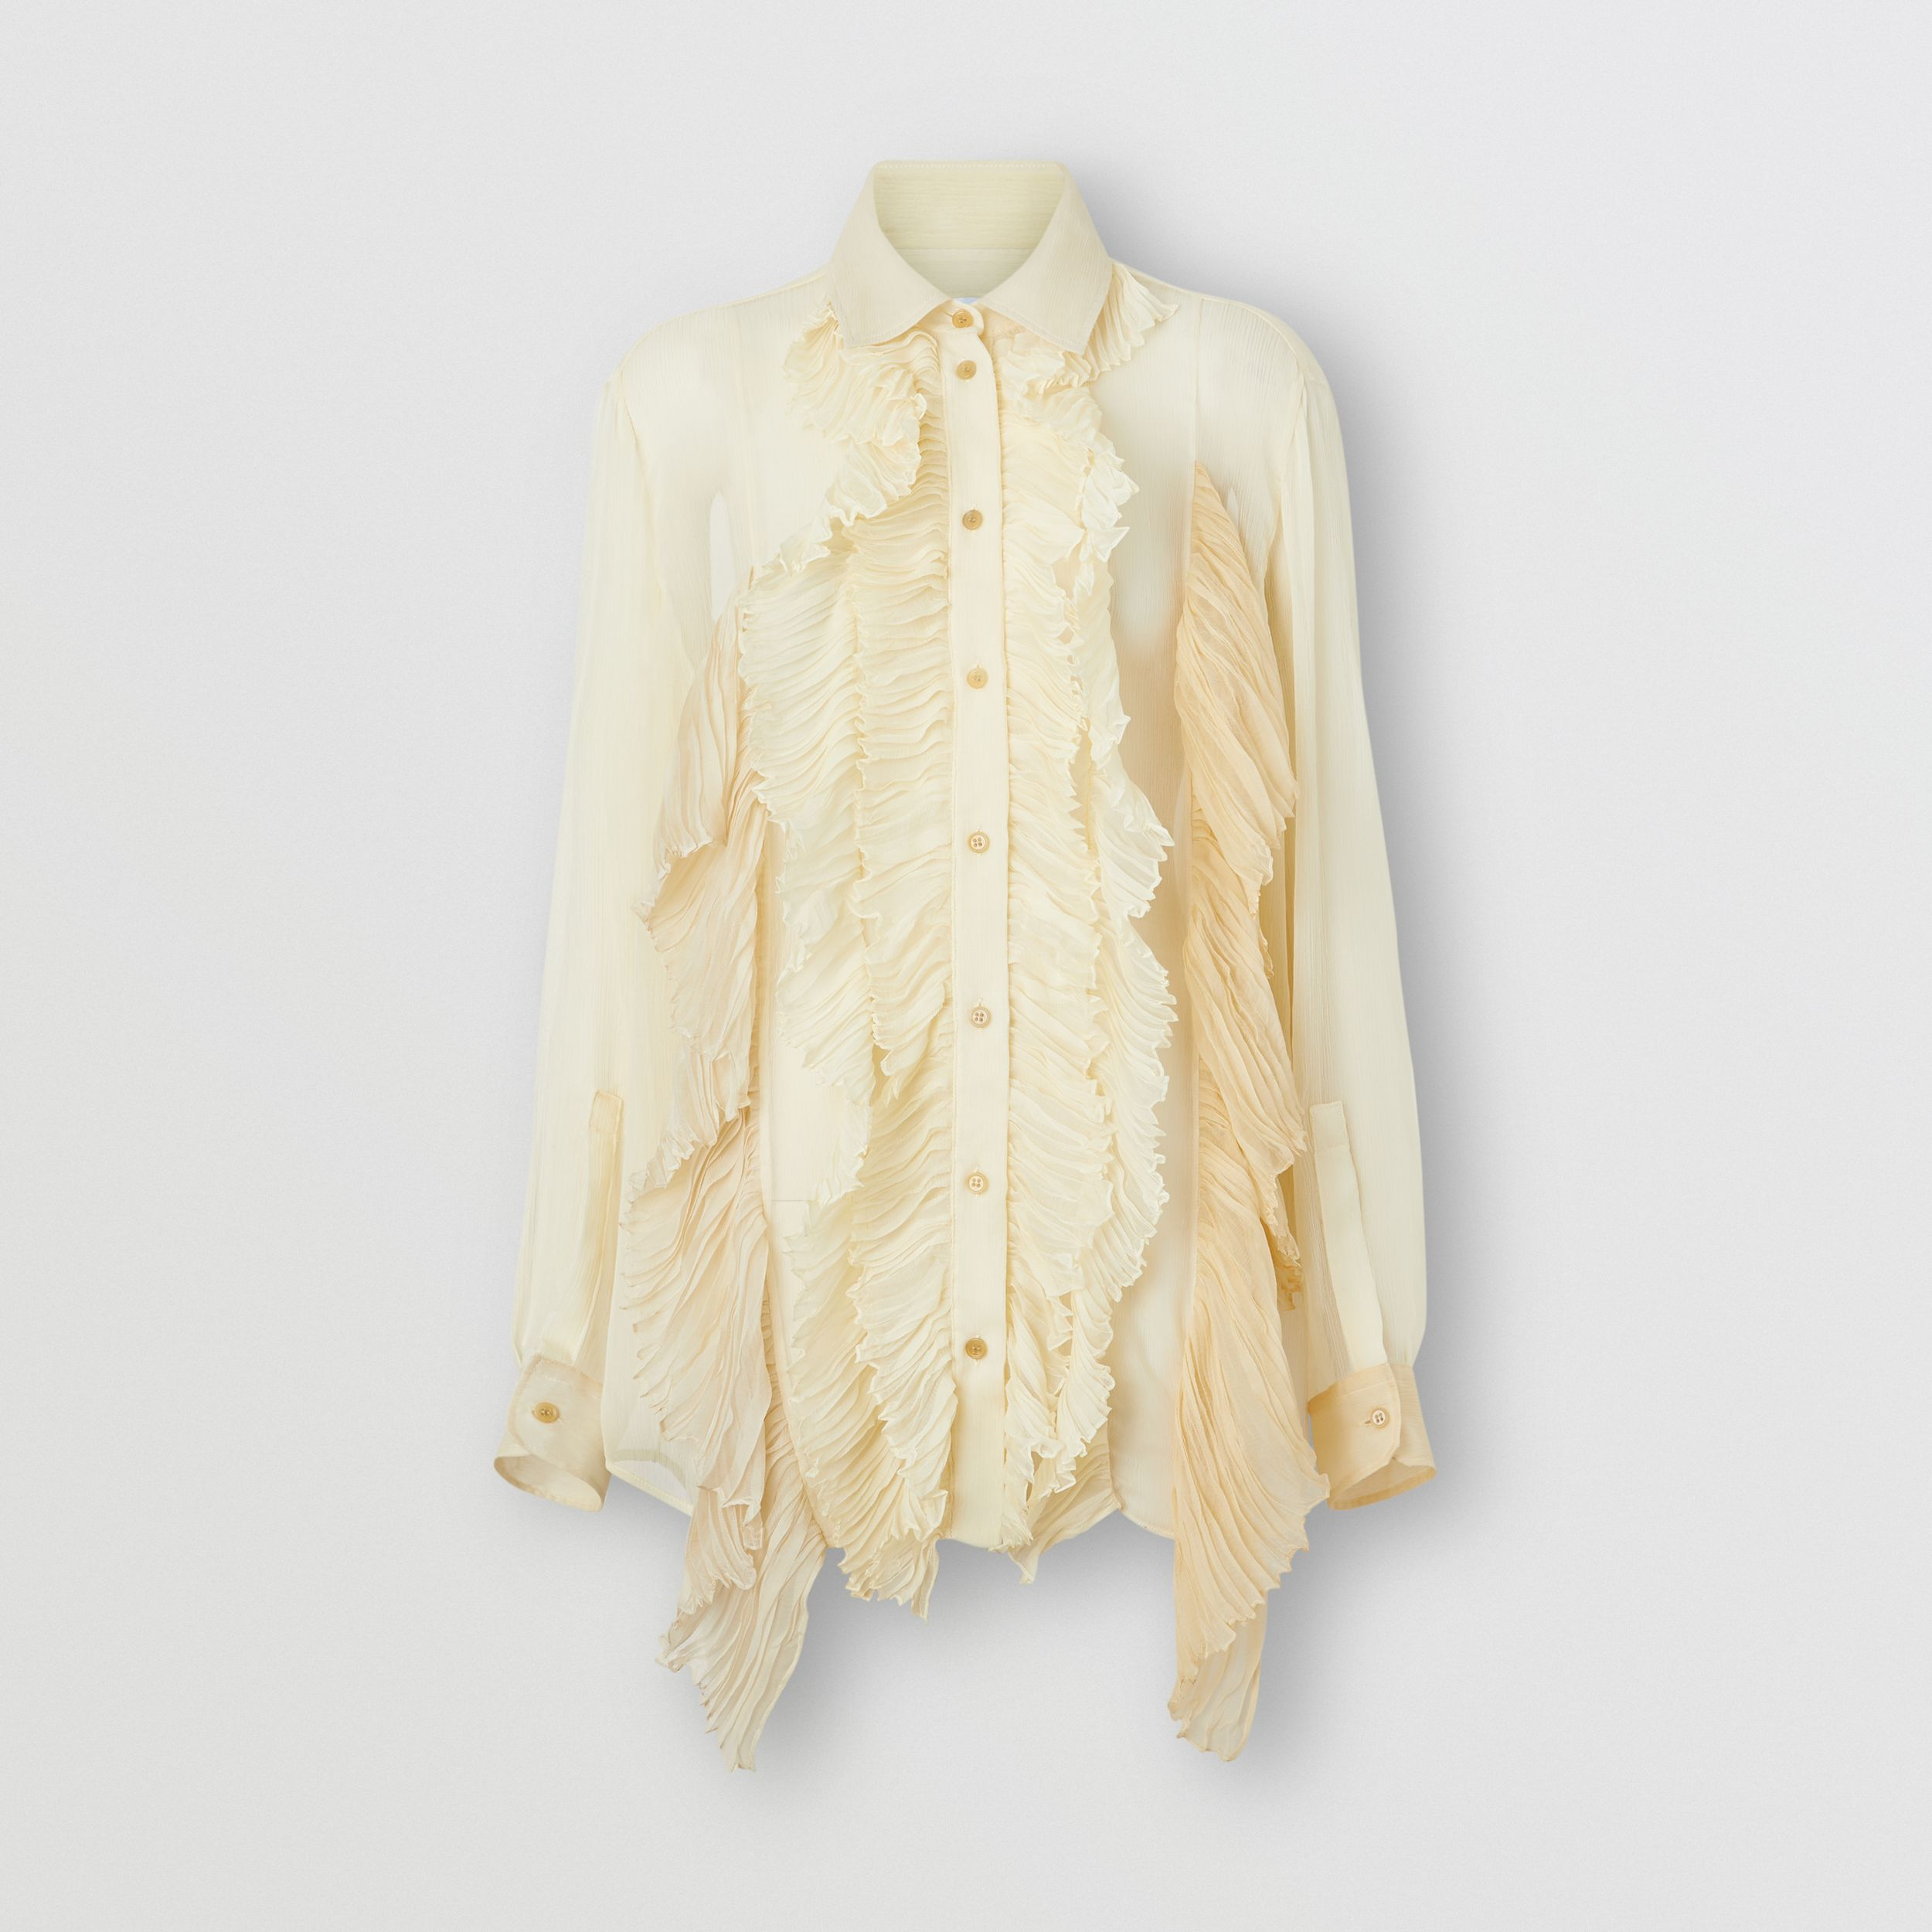 Ruffle Detail Crepe De Chine Oversized Blouse in Light Oatmeal - Women | Burberry - 4